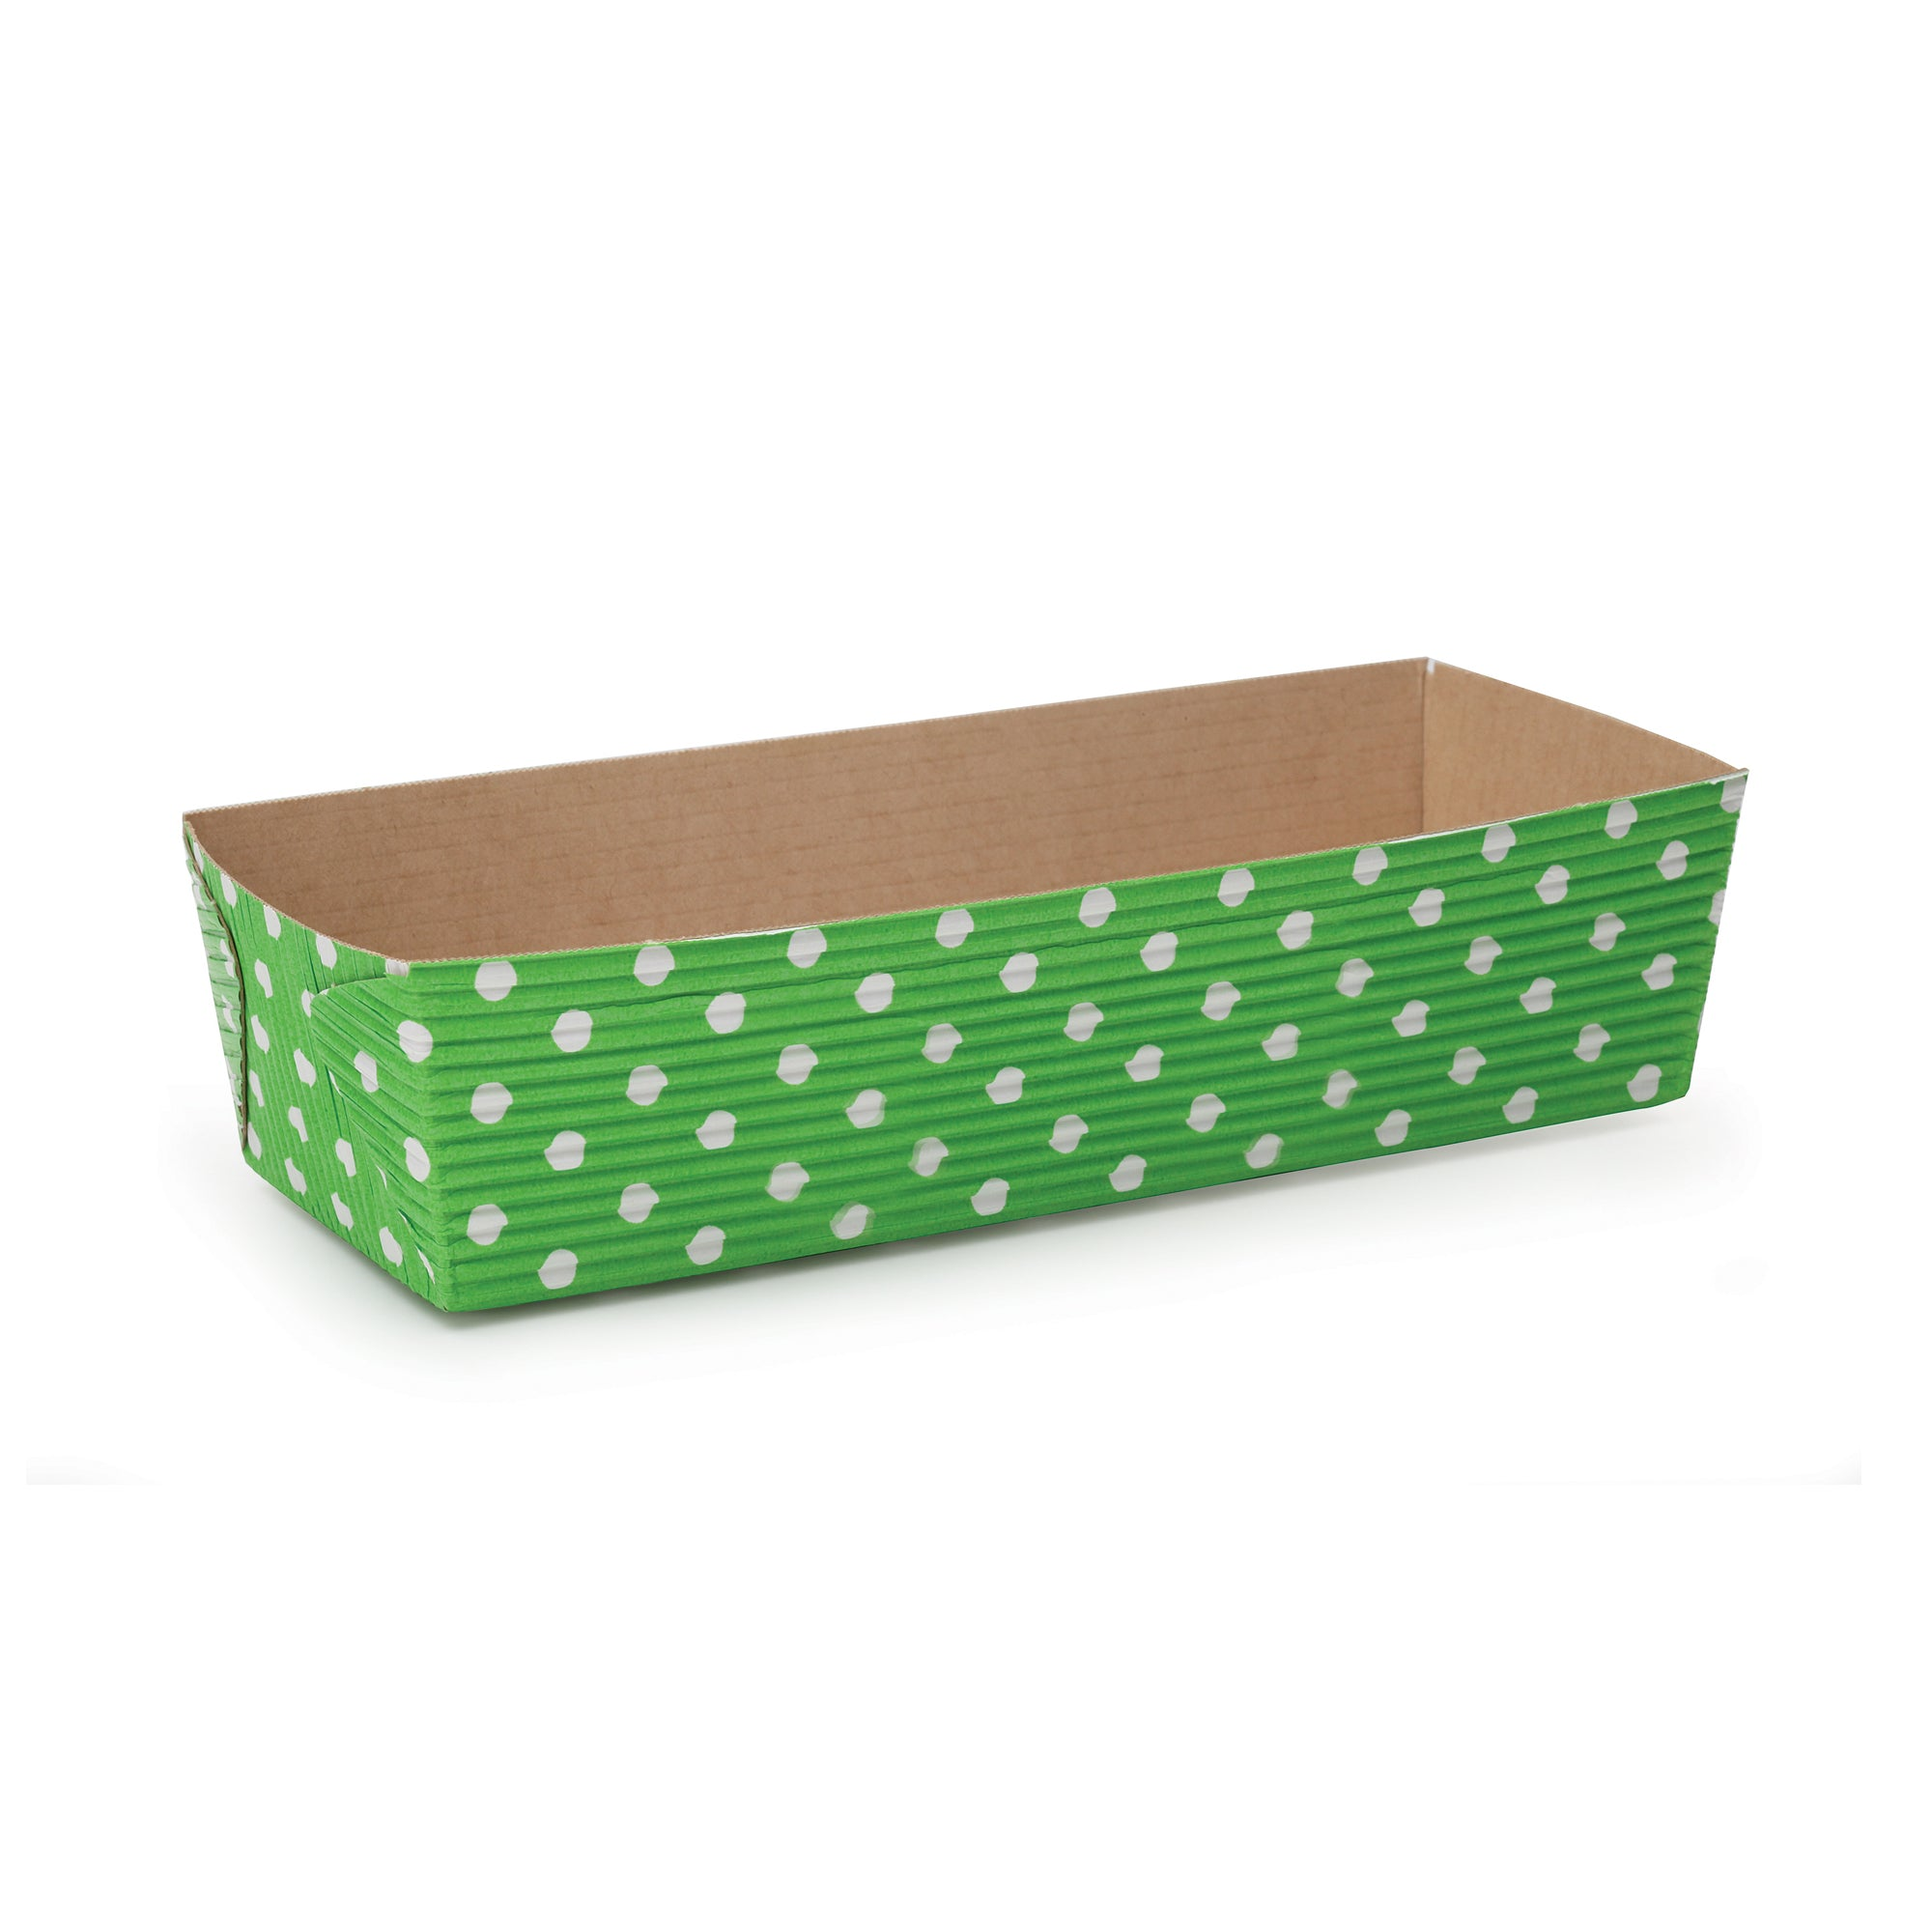 "6.9"" Loaf Pans, CT8244 - Welcome Home Brands Wholesale"